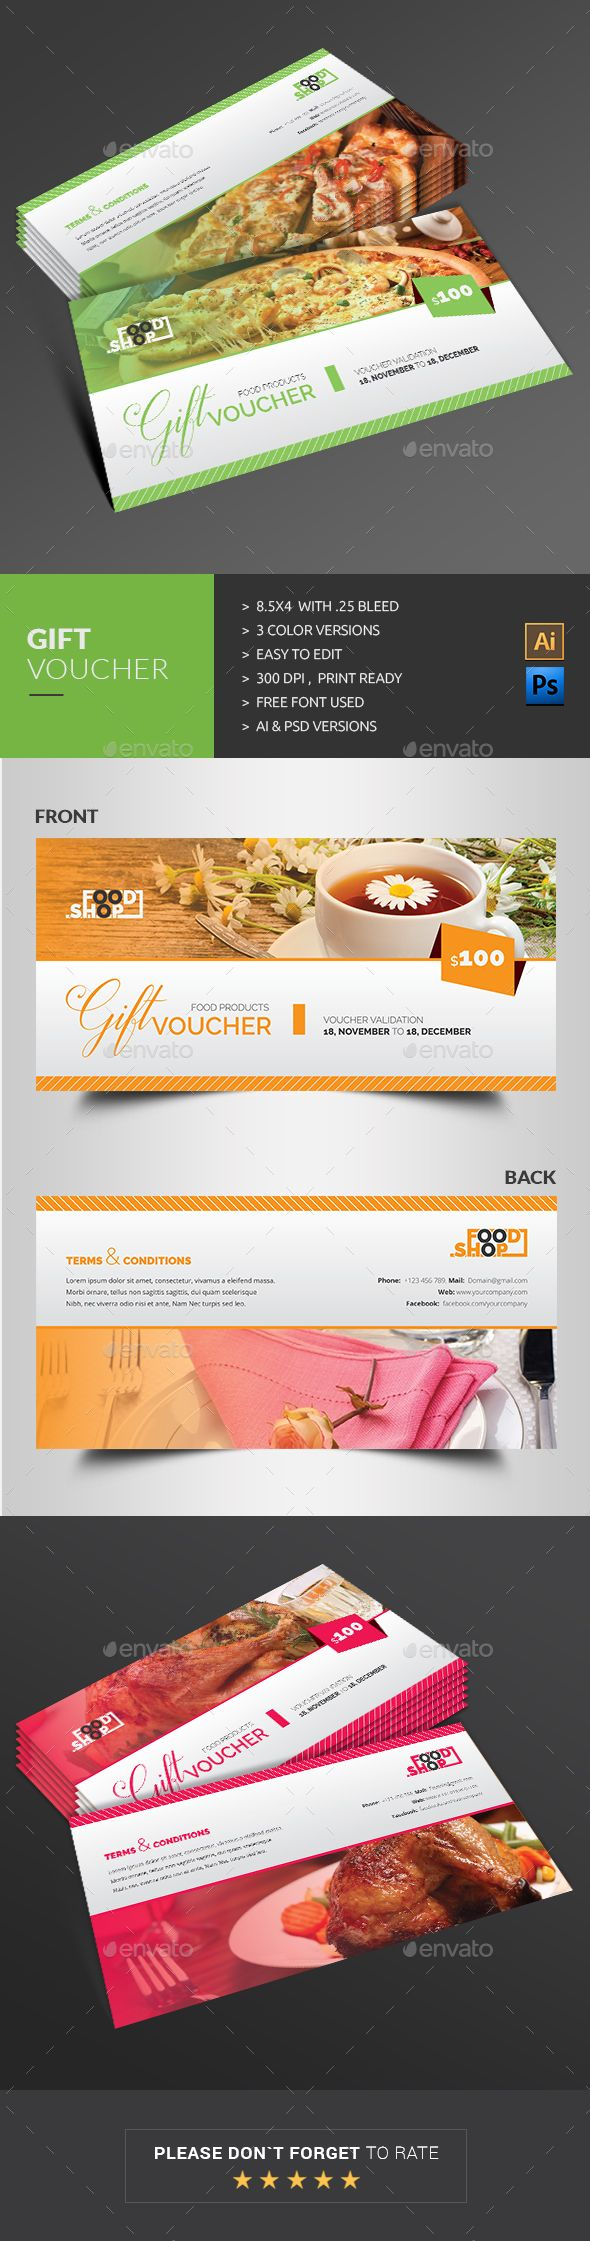 26 best gift voucher design images on pinterest box design gift voucher yadclub Image collections